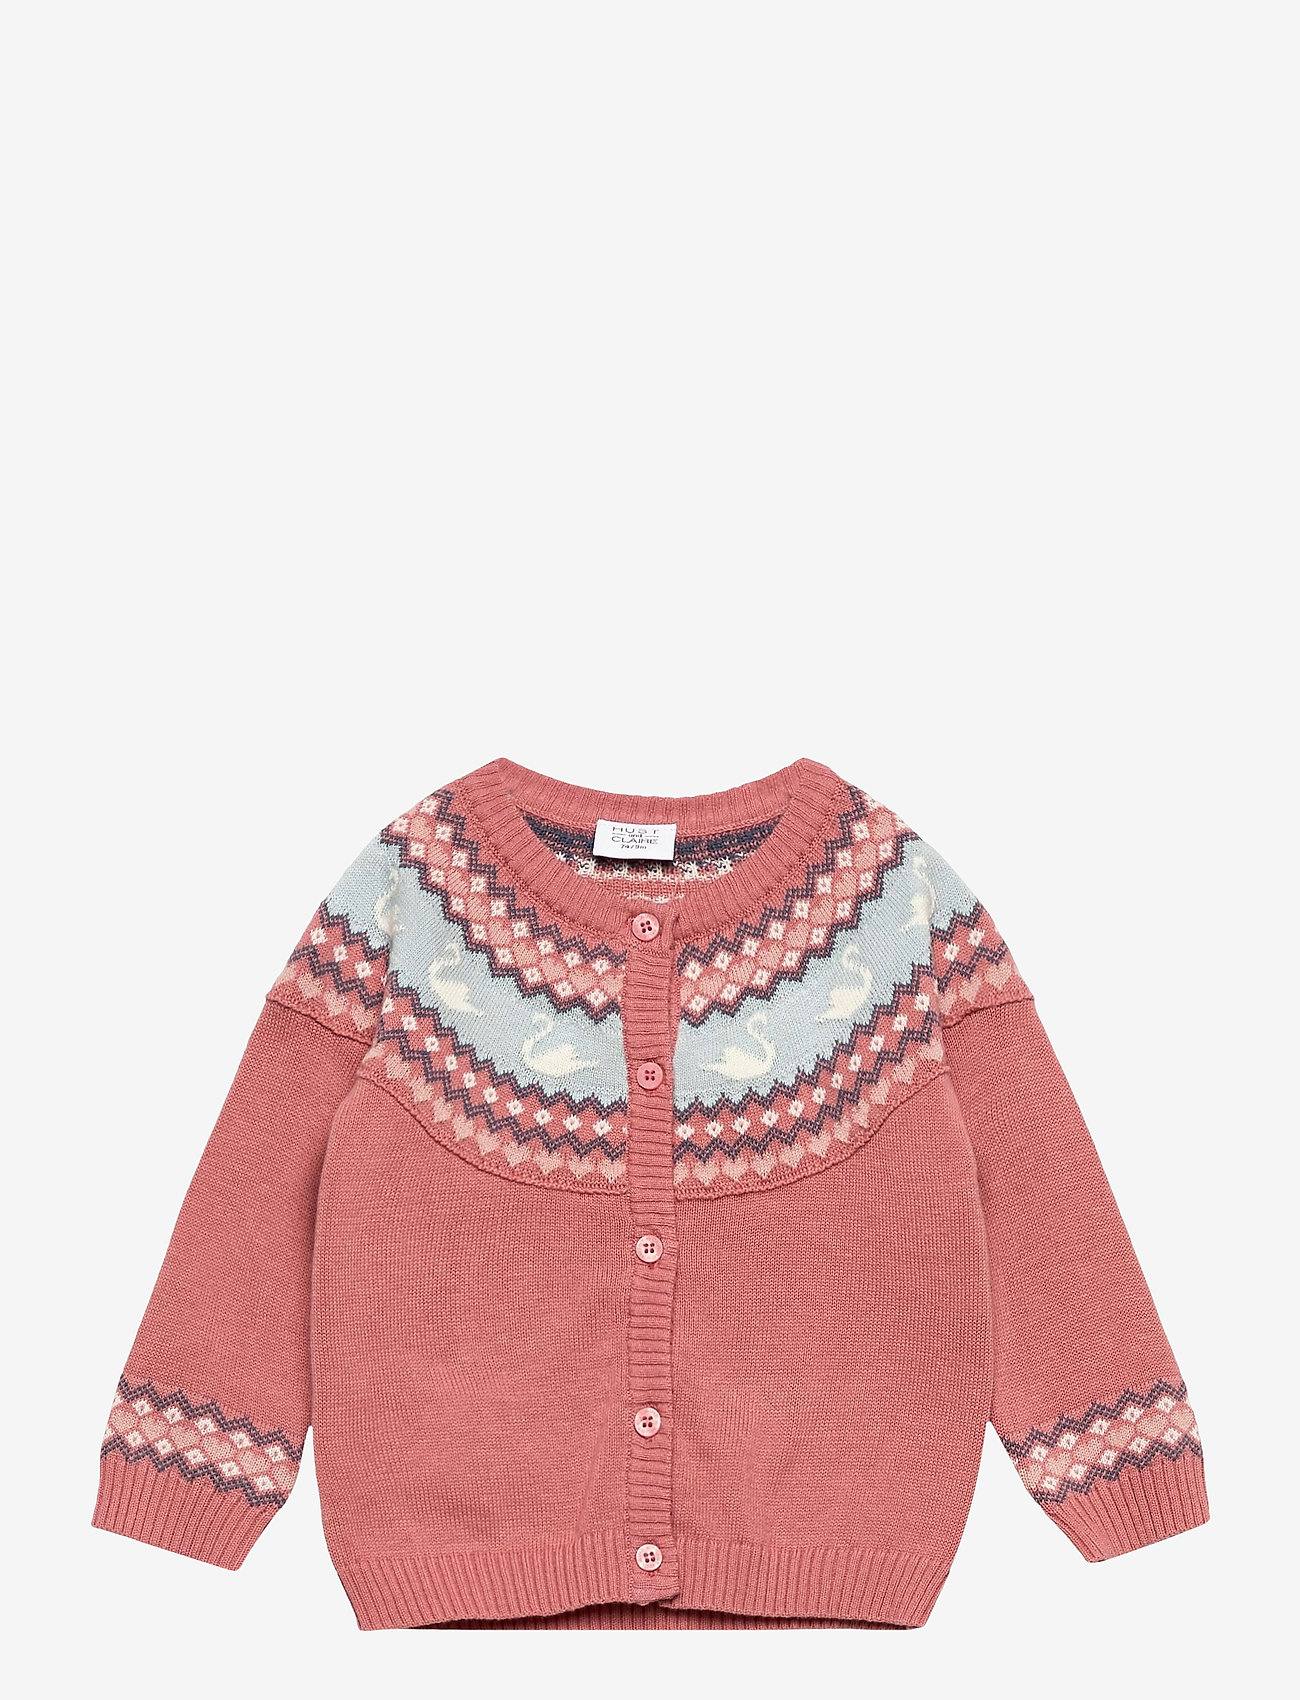 Hust & Claire - Charme - Cardigan - gilets - old rosie - 0